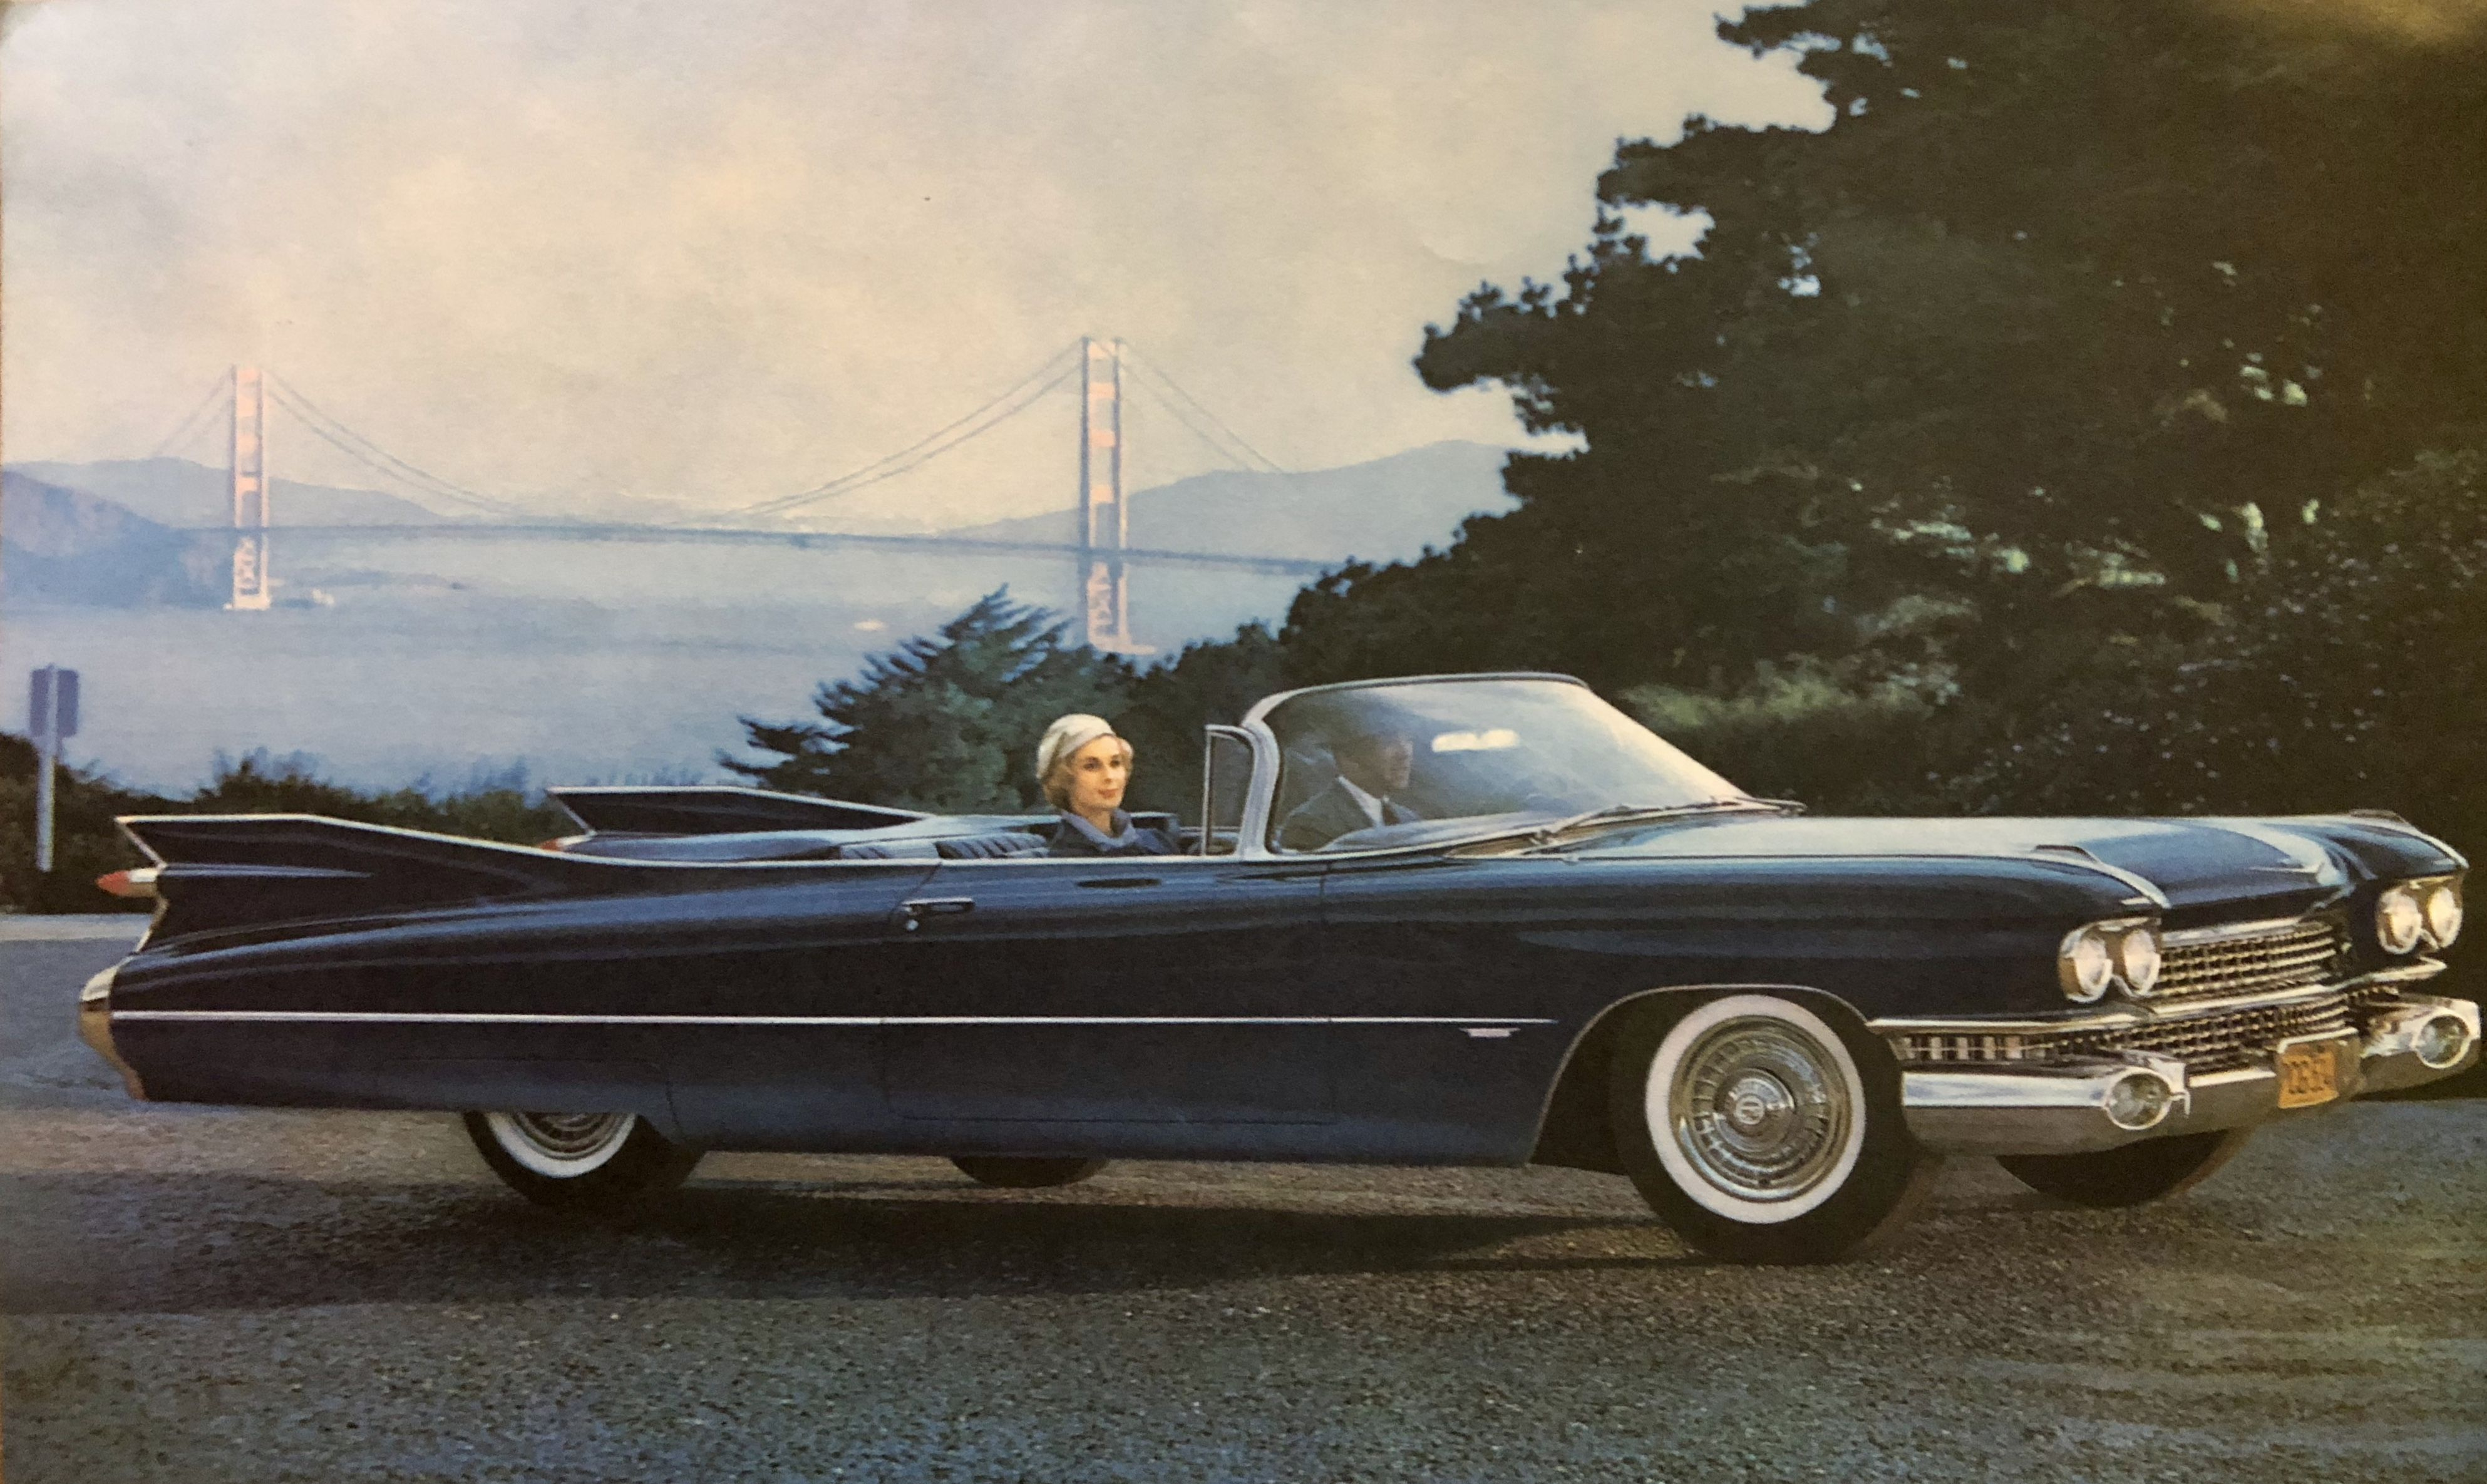 f2e5604a043e9613b647edb47779f467 Cool Review About 1968 Cadillac